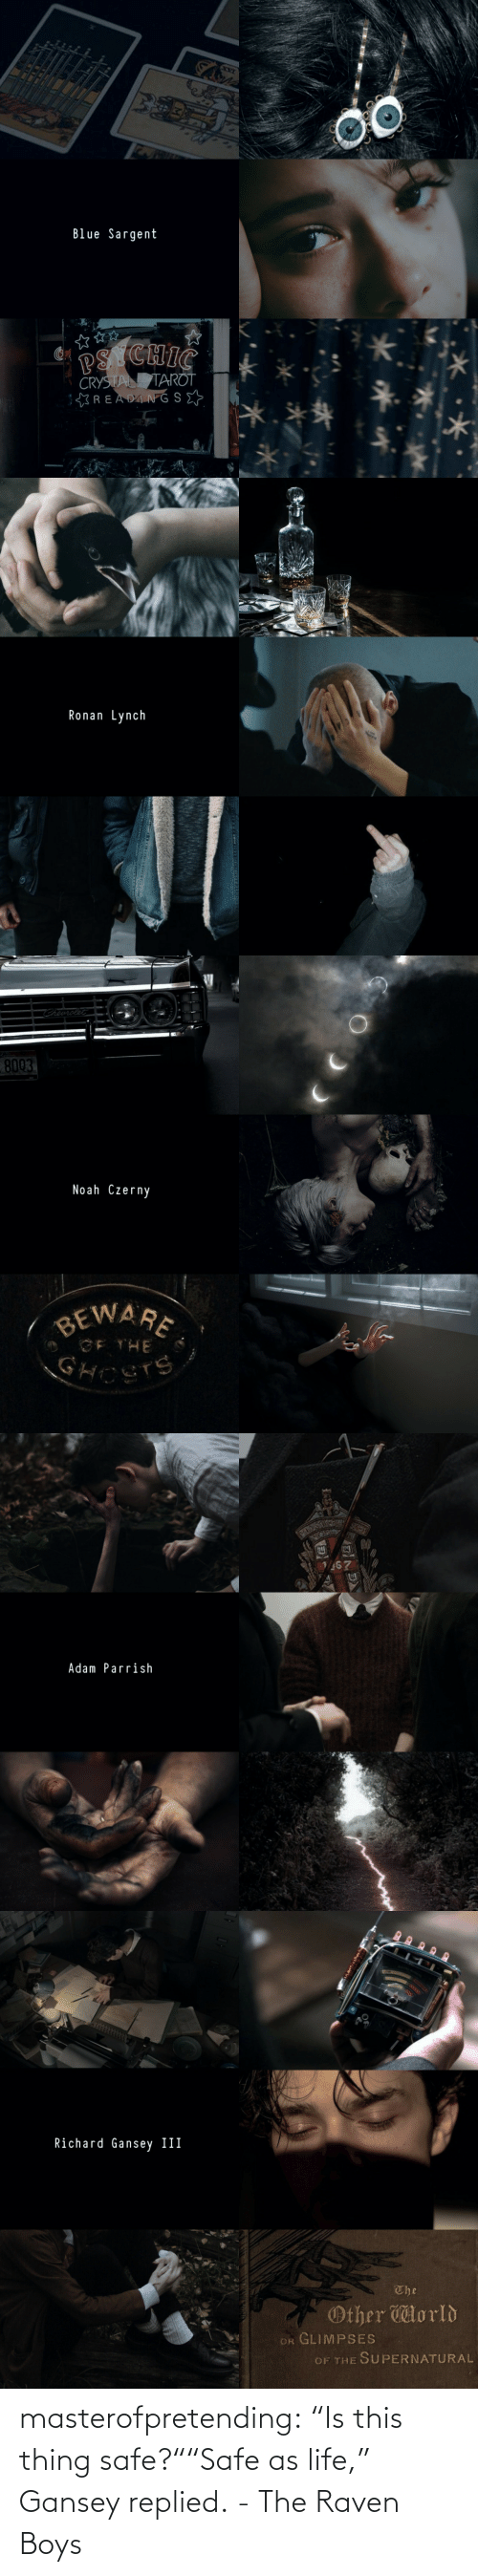 """Life, Target, and Tumblr: XYI  Blue Sargent  PS CHIC  CRYSTAL TAROT  :READANG SE  *.**   Ronan Lynch   hevrolet  8003  Noah Czerny  BEWARE  GF THE  GHOSTS   67  Adam Parrish  EV{E   Richard Gansey II  The  Other lorld  OR GLIMPSES  OF THE SUPERNATURAL masterofpretending: """"Is this thing safe?""""""""Safe as life,"""" Gansey replied. - The Raven Boys"""